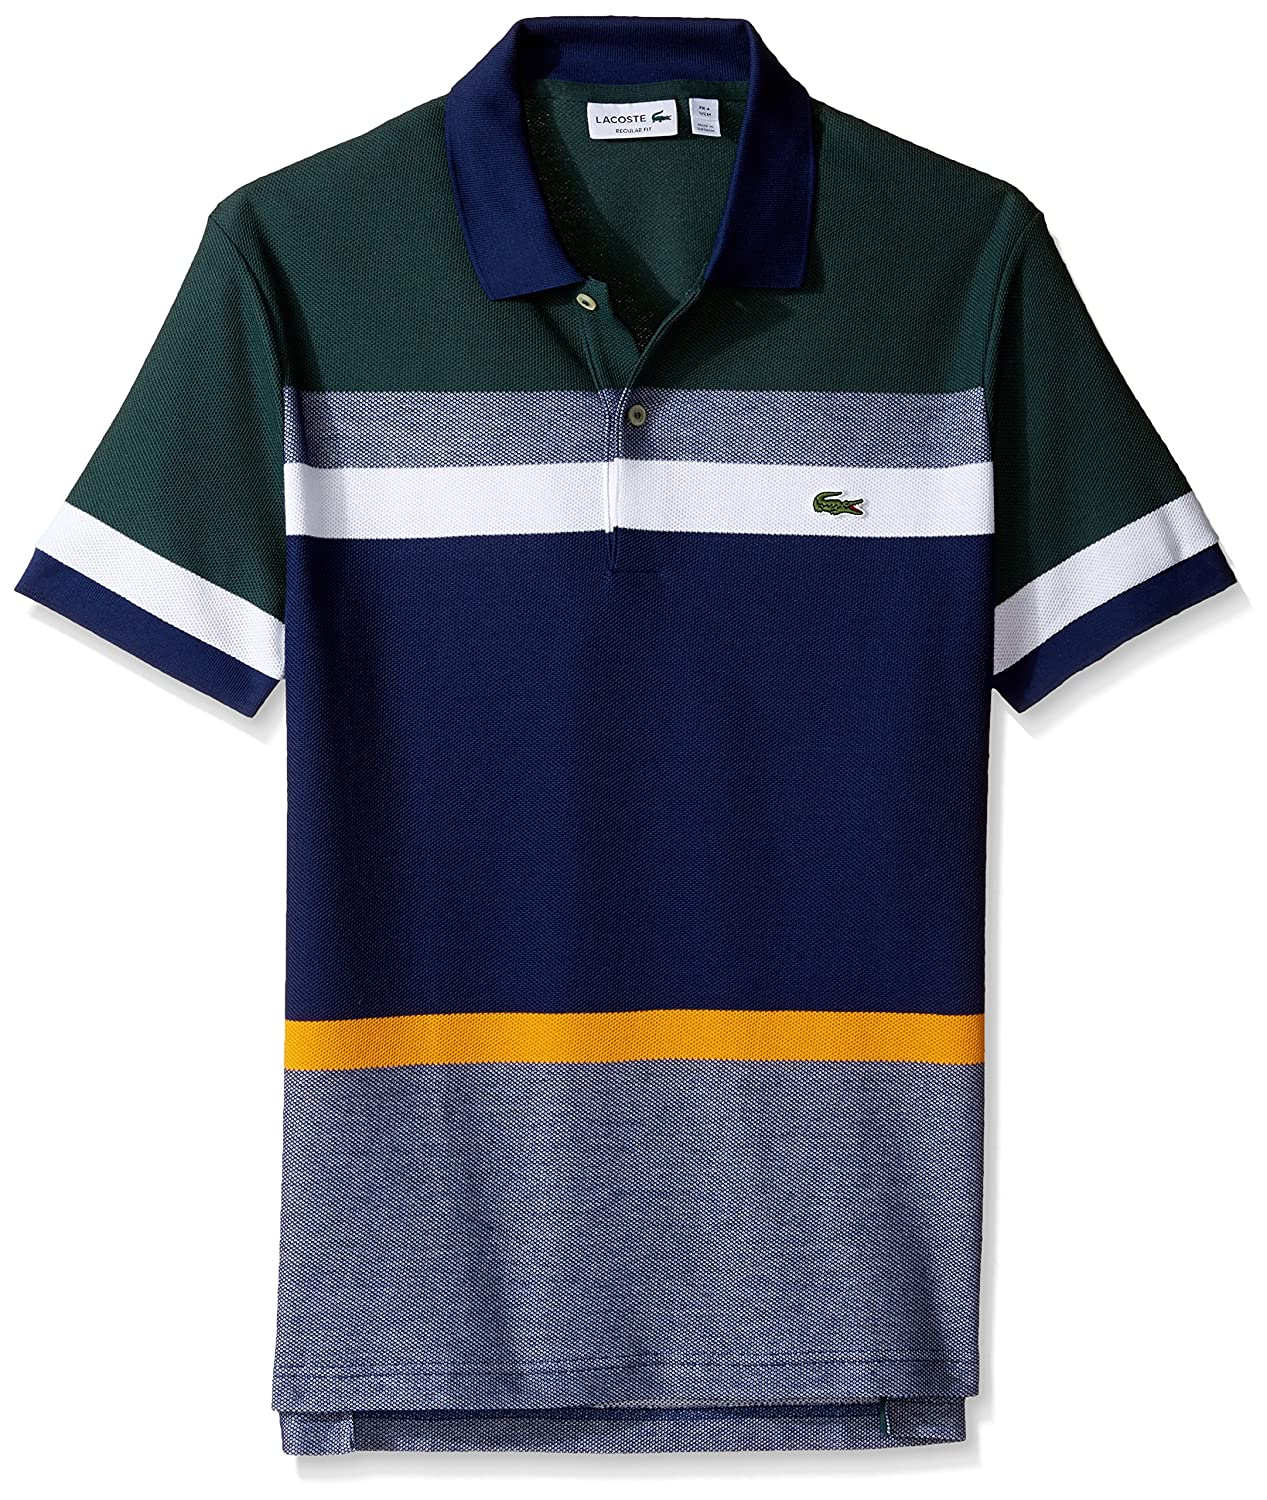 e4873ce8 How Tell Polo Shirt Fake Lacoste A Can You 8XPnkNO0w